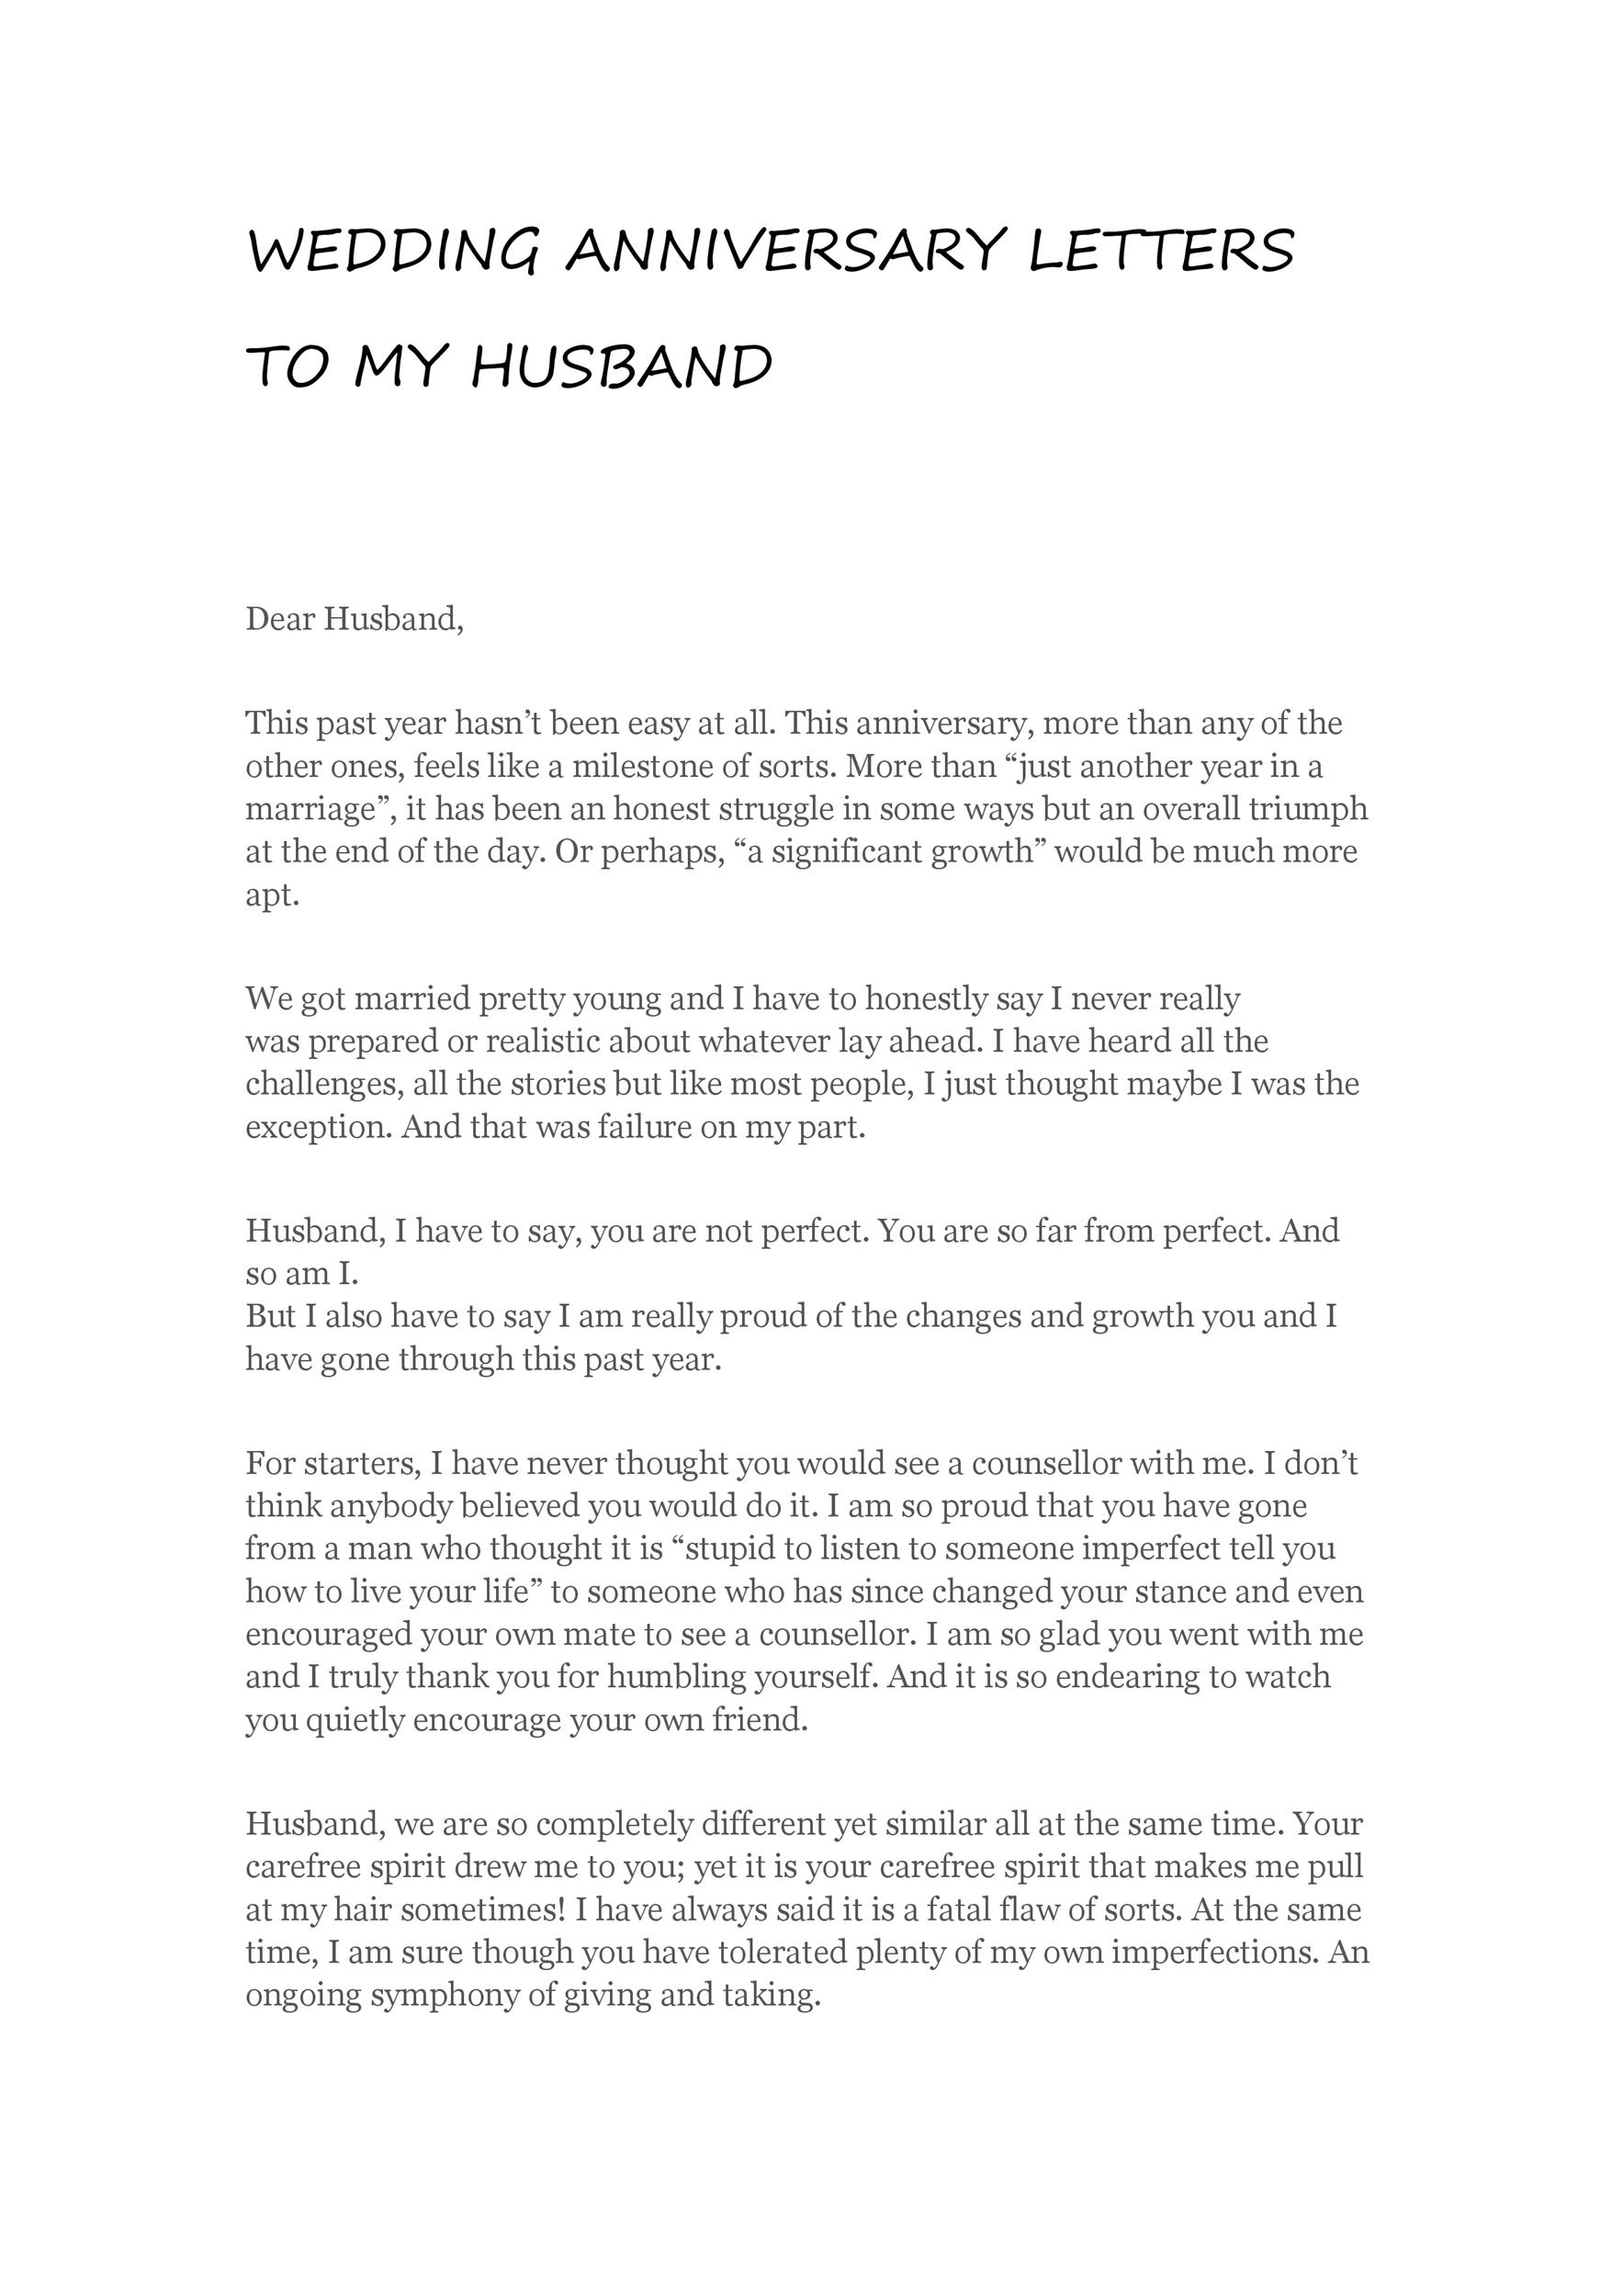 Happy Anniversary Letter To My Husband from templatelab.com